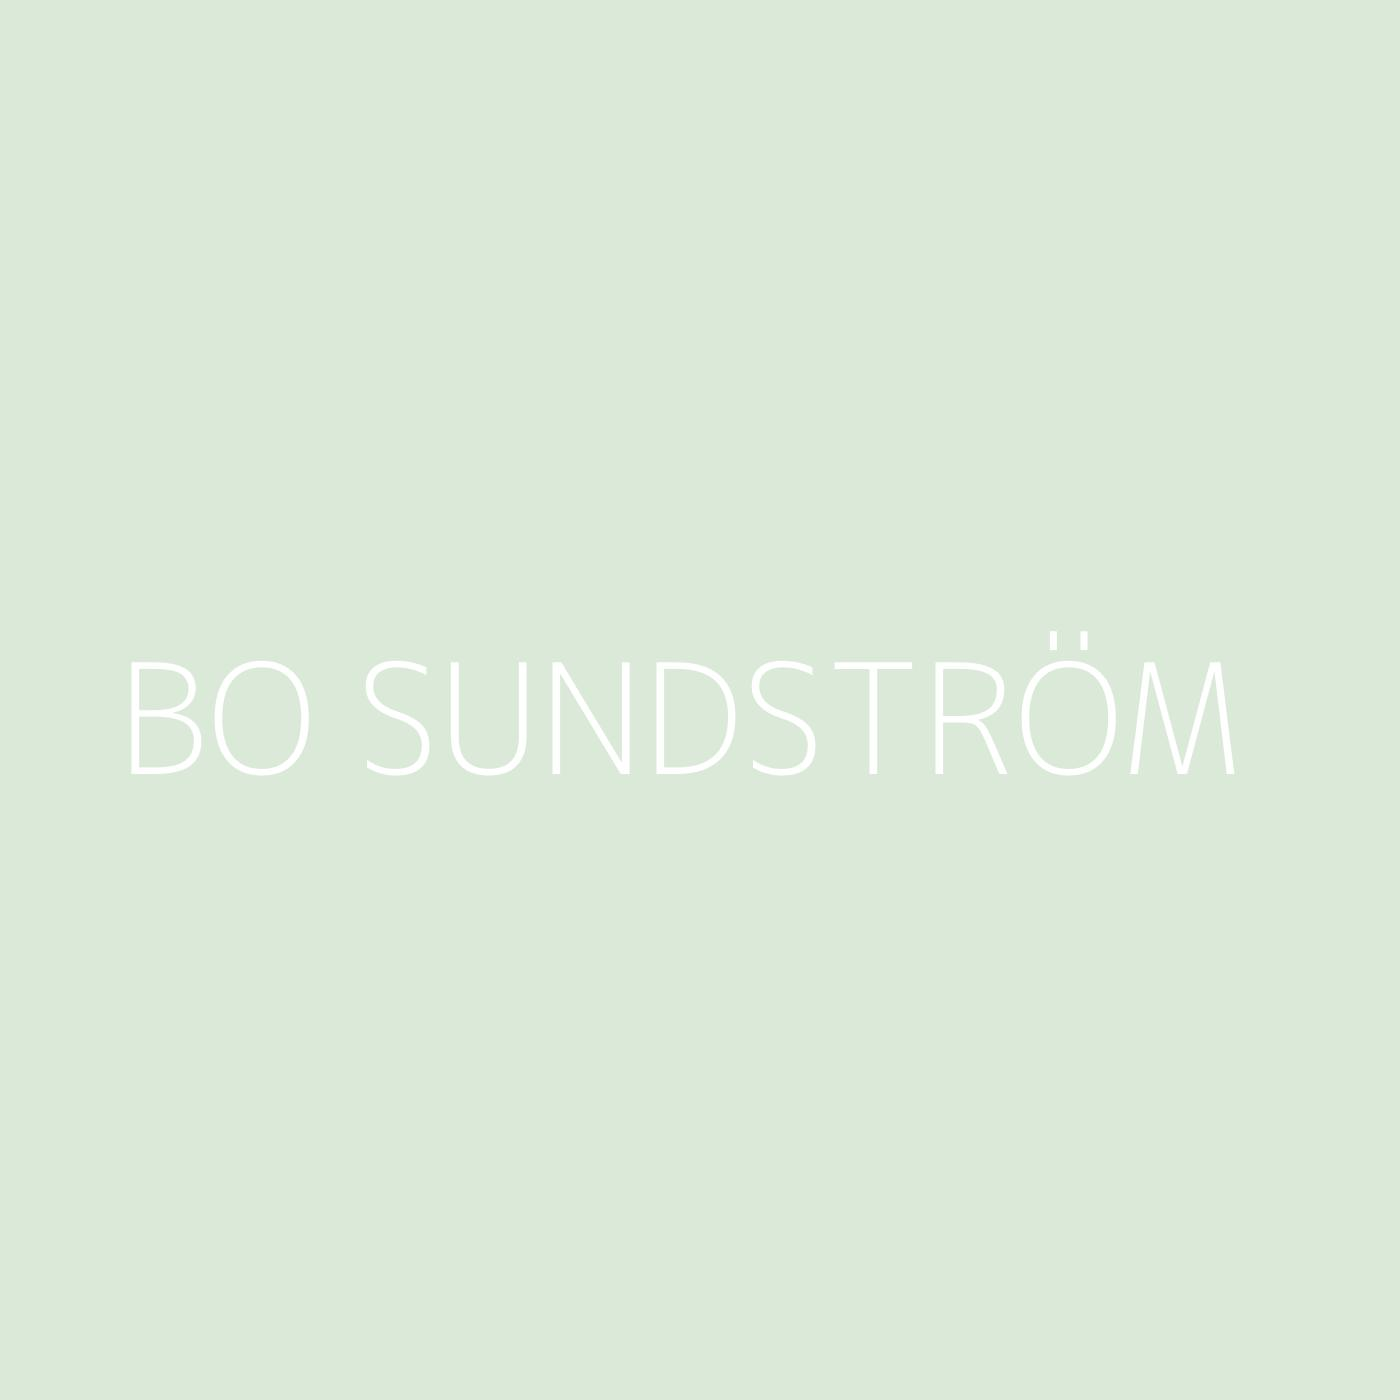 Bo Sundström Playlist Artwork